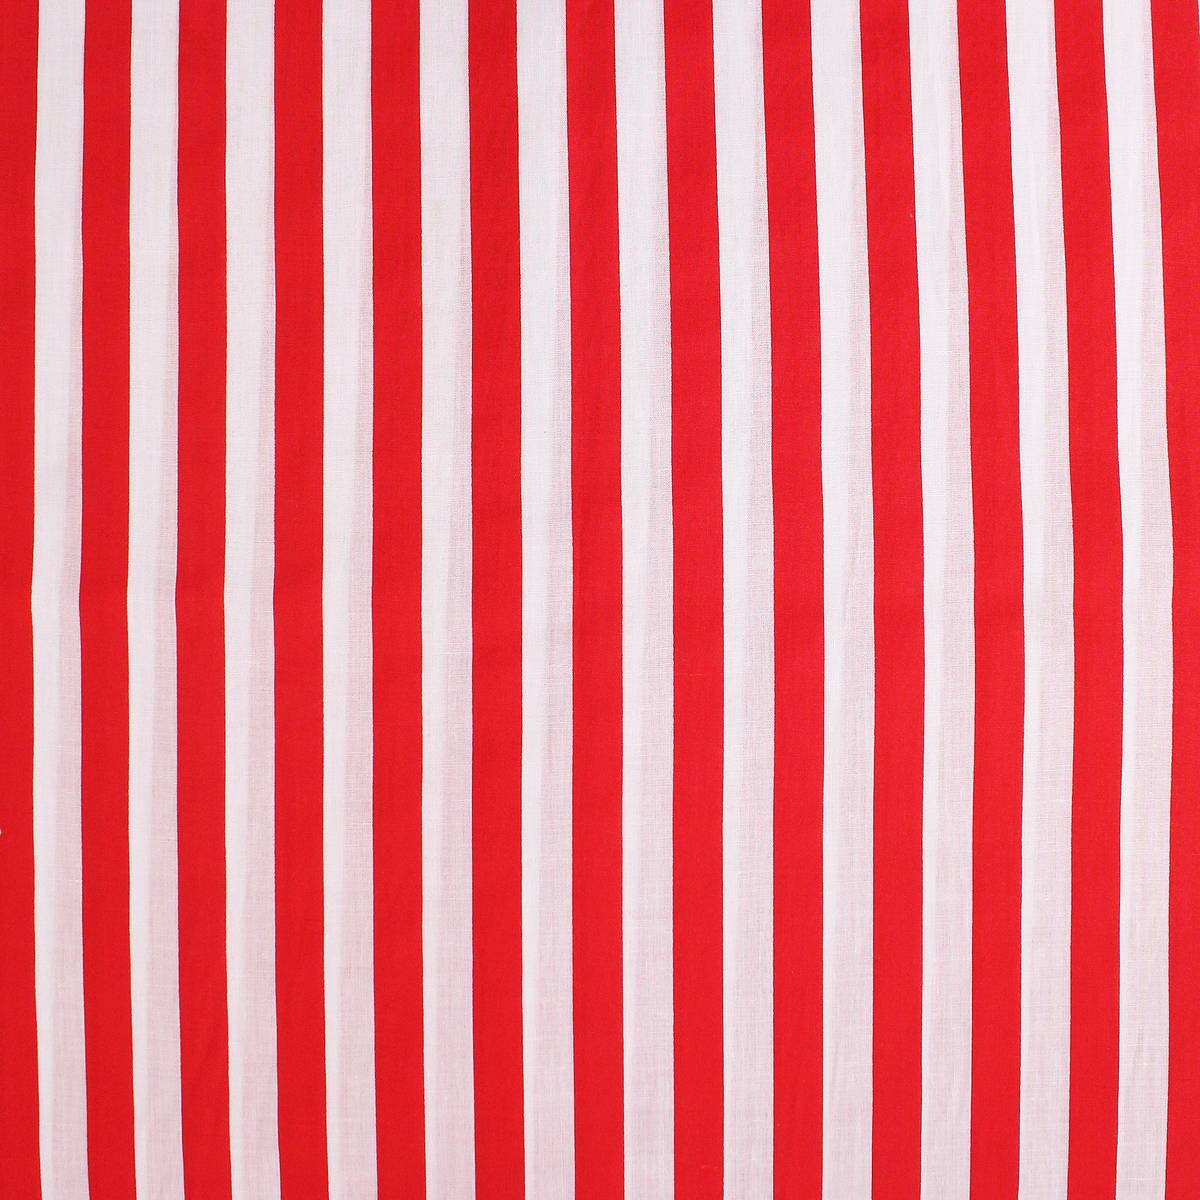 Striped Fabric for Shirts